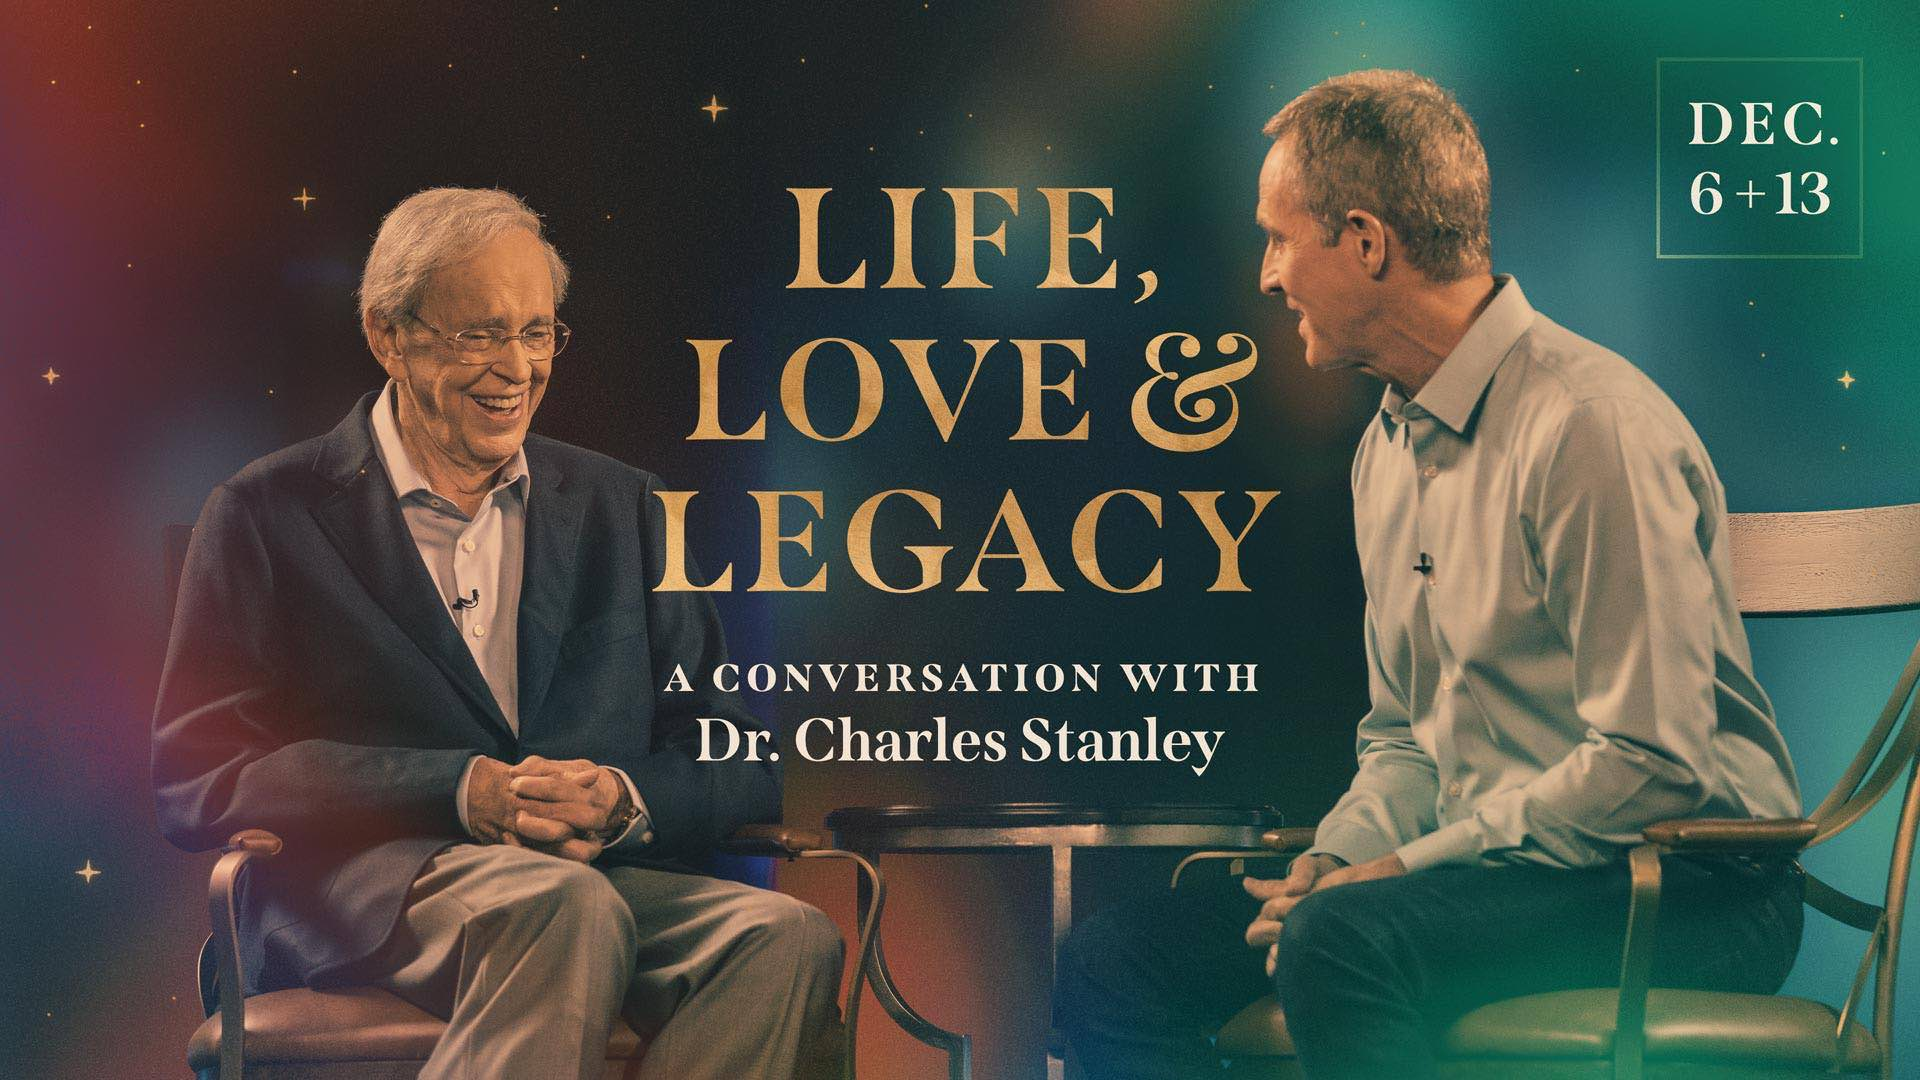 Life, Love & Legacy: A Conversation with Dr. Charles Stanley